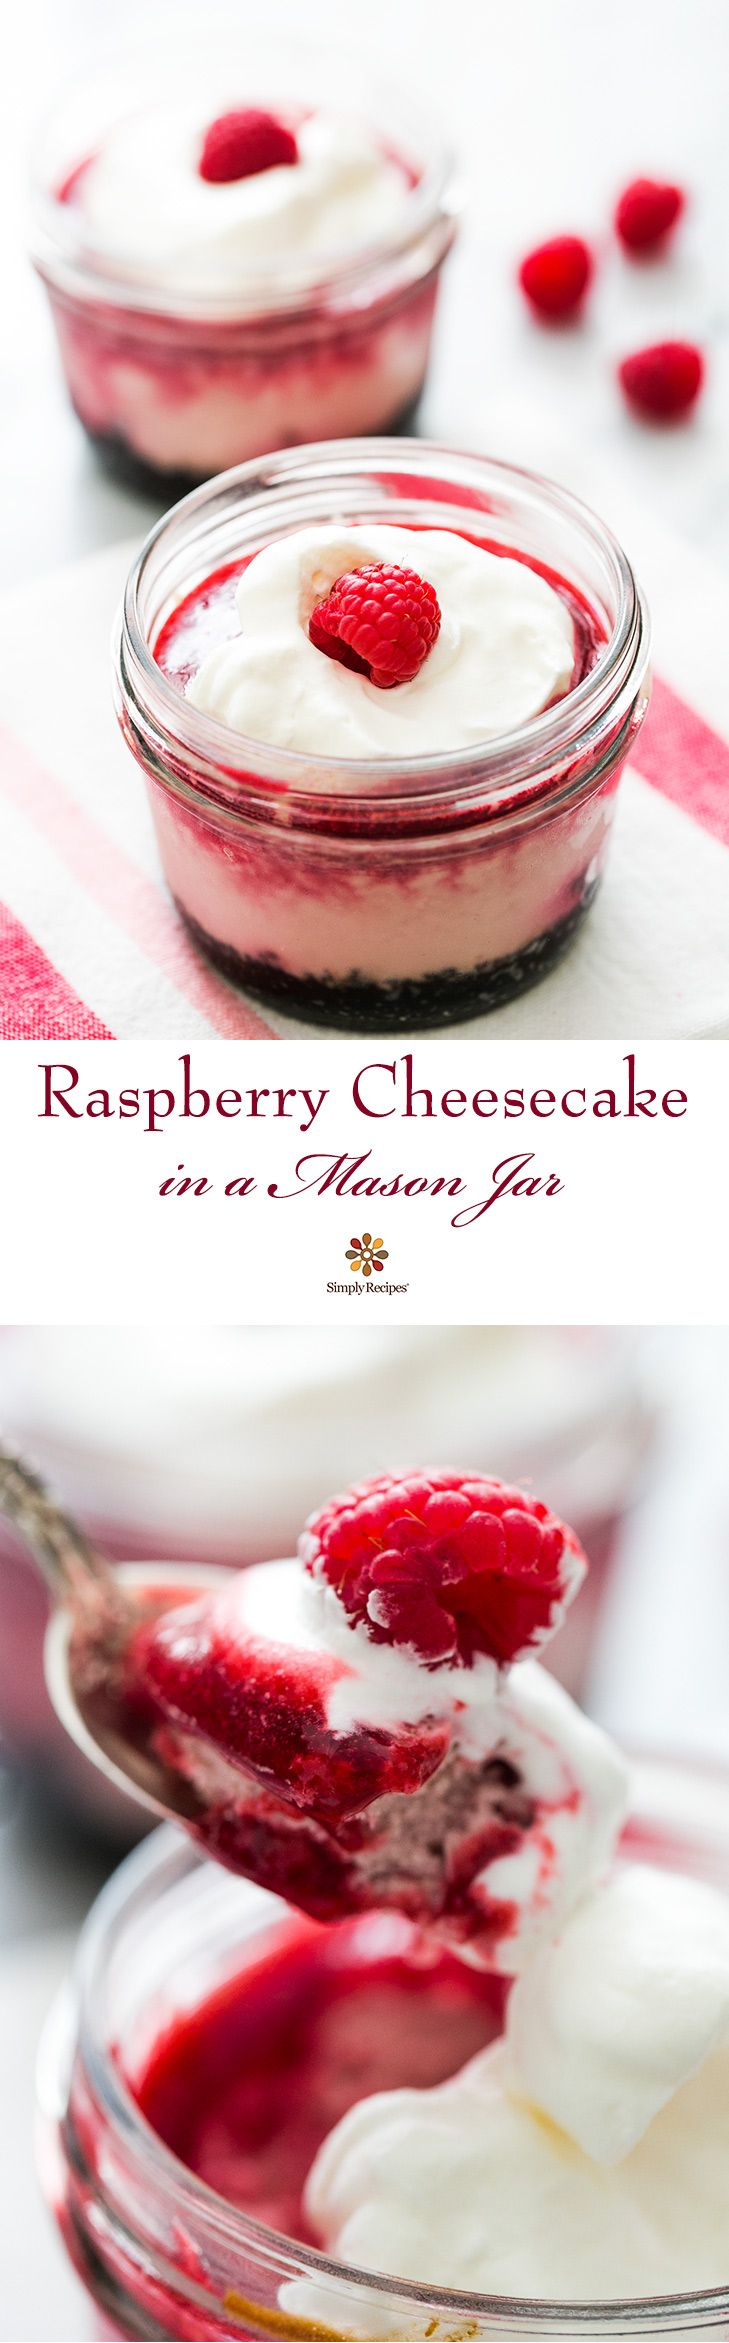 Individual raspberry cheesecakes in mason jars for easy cooking and eating! Oreo cookie crust with a raspberry cheesecake filling, topped with raspberry sauce and whipped cream. Perfect for Valentine's Day! Get the recipe on SimplyRecipes.com